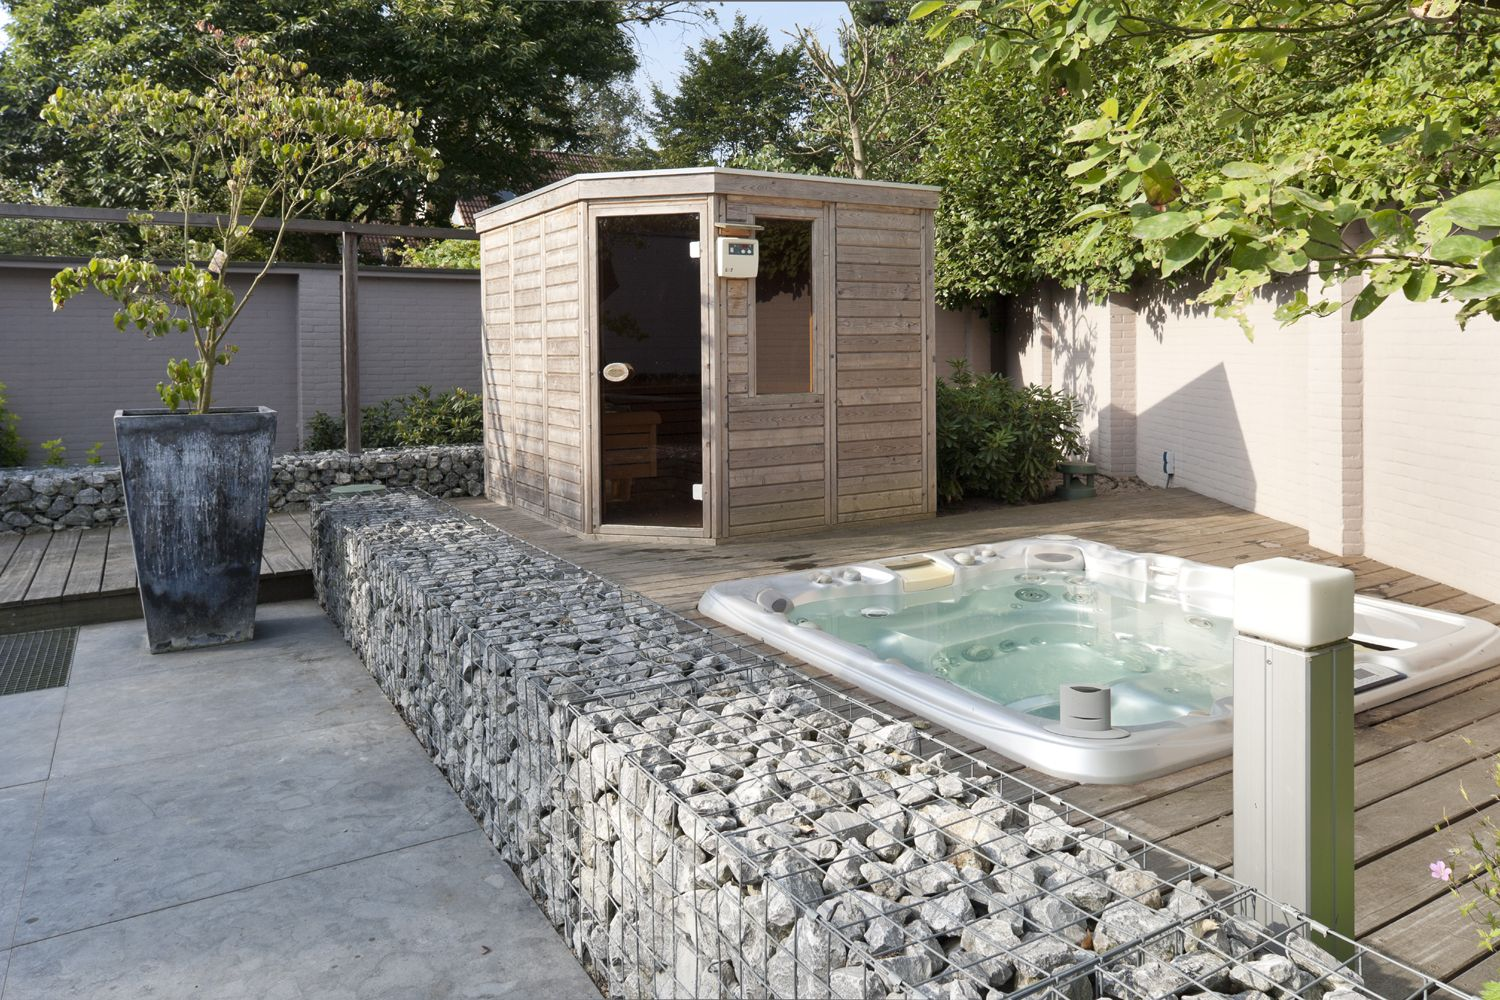 Jacuzzi In Tuin : Een jacuzzi in de tuin royalty wellness